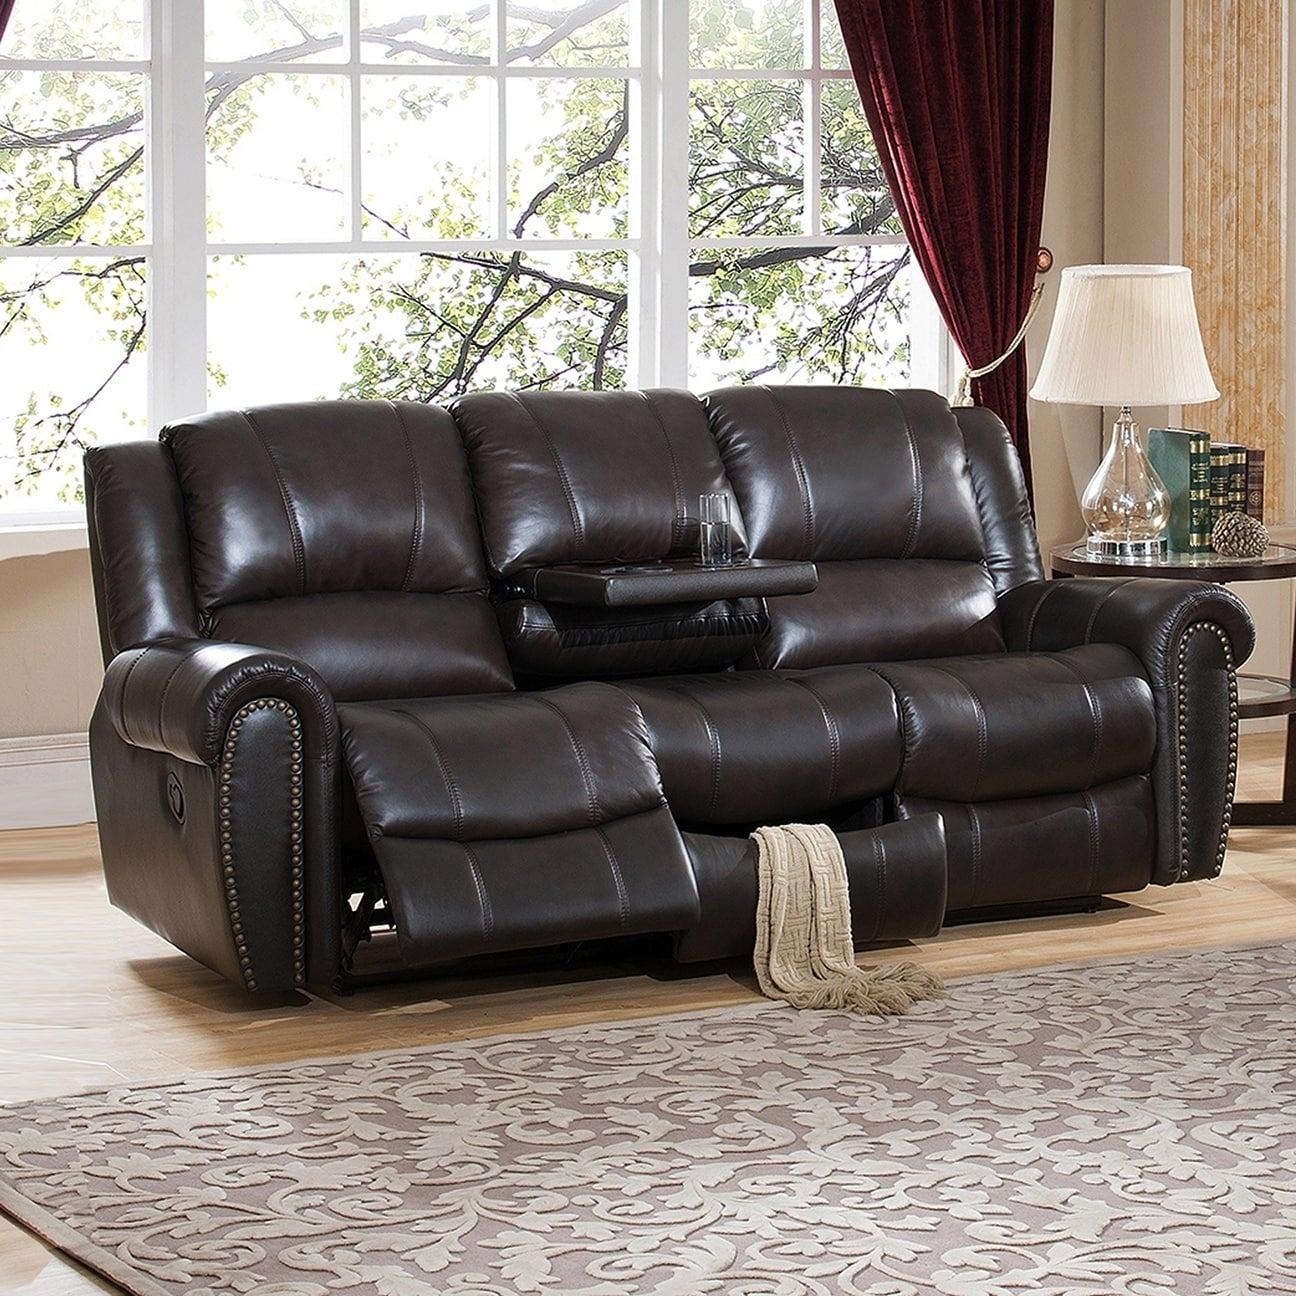 Charlotte Top Grain Leather Reclining Sofa With Memory Foam Storage Drawer And Pull Out Tray Table Free Shipping Today 18562657